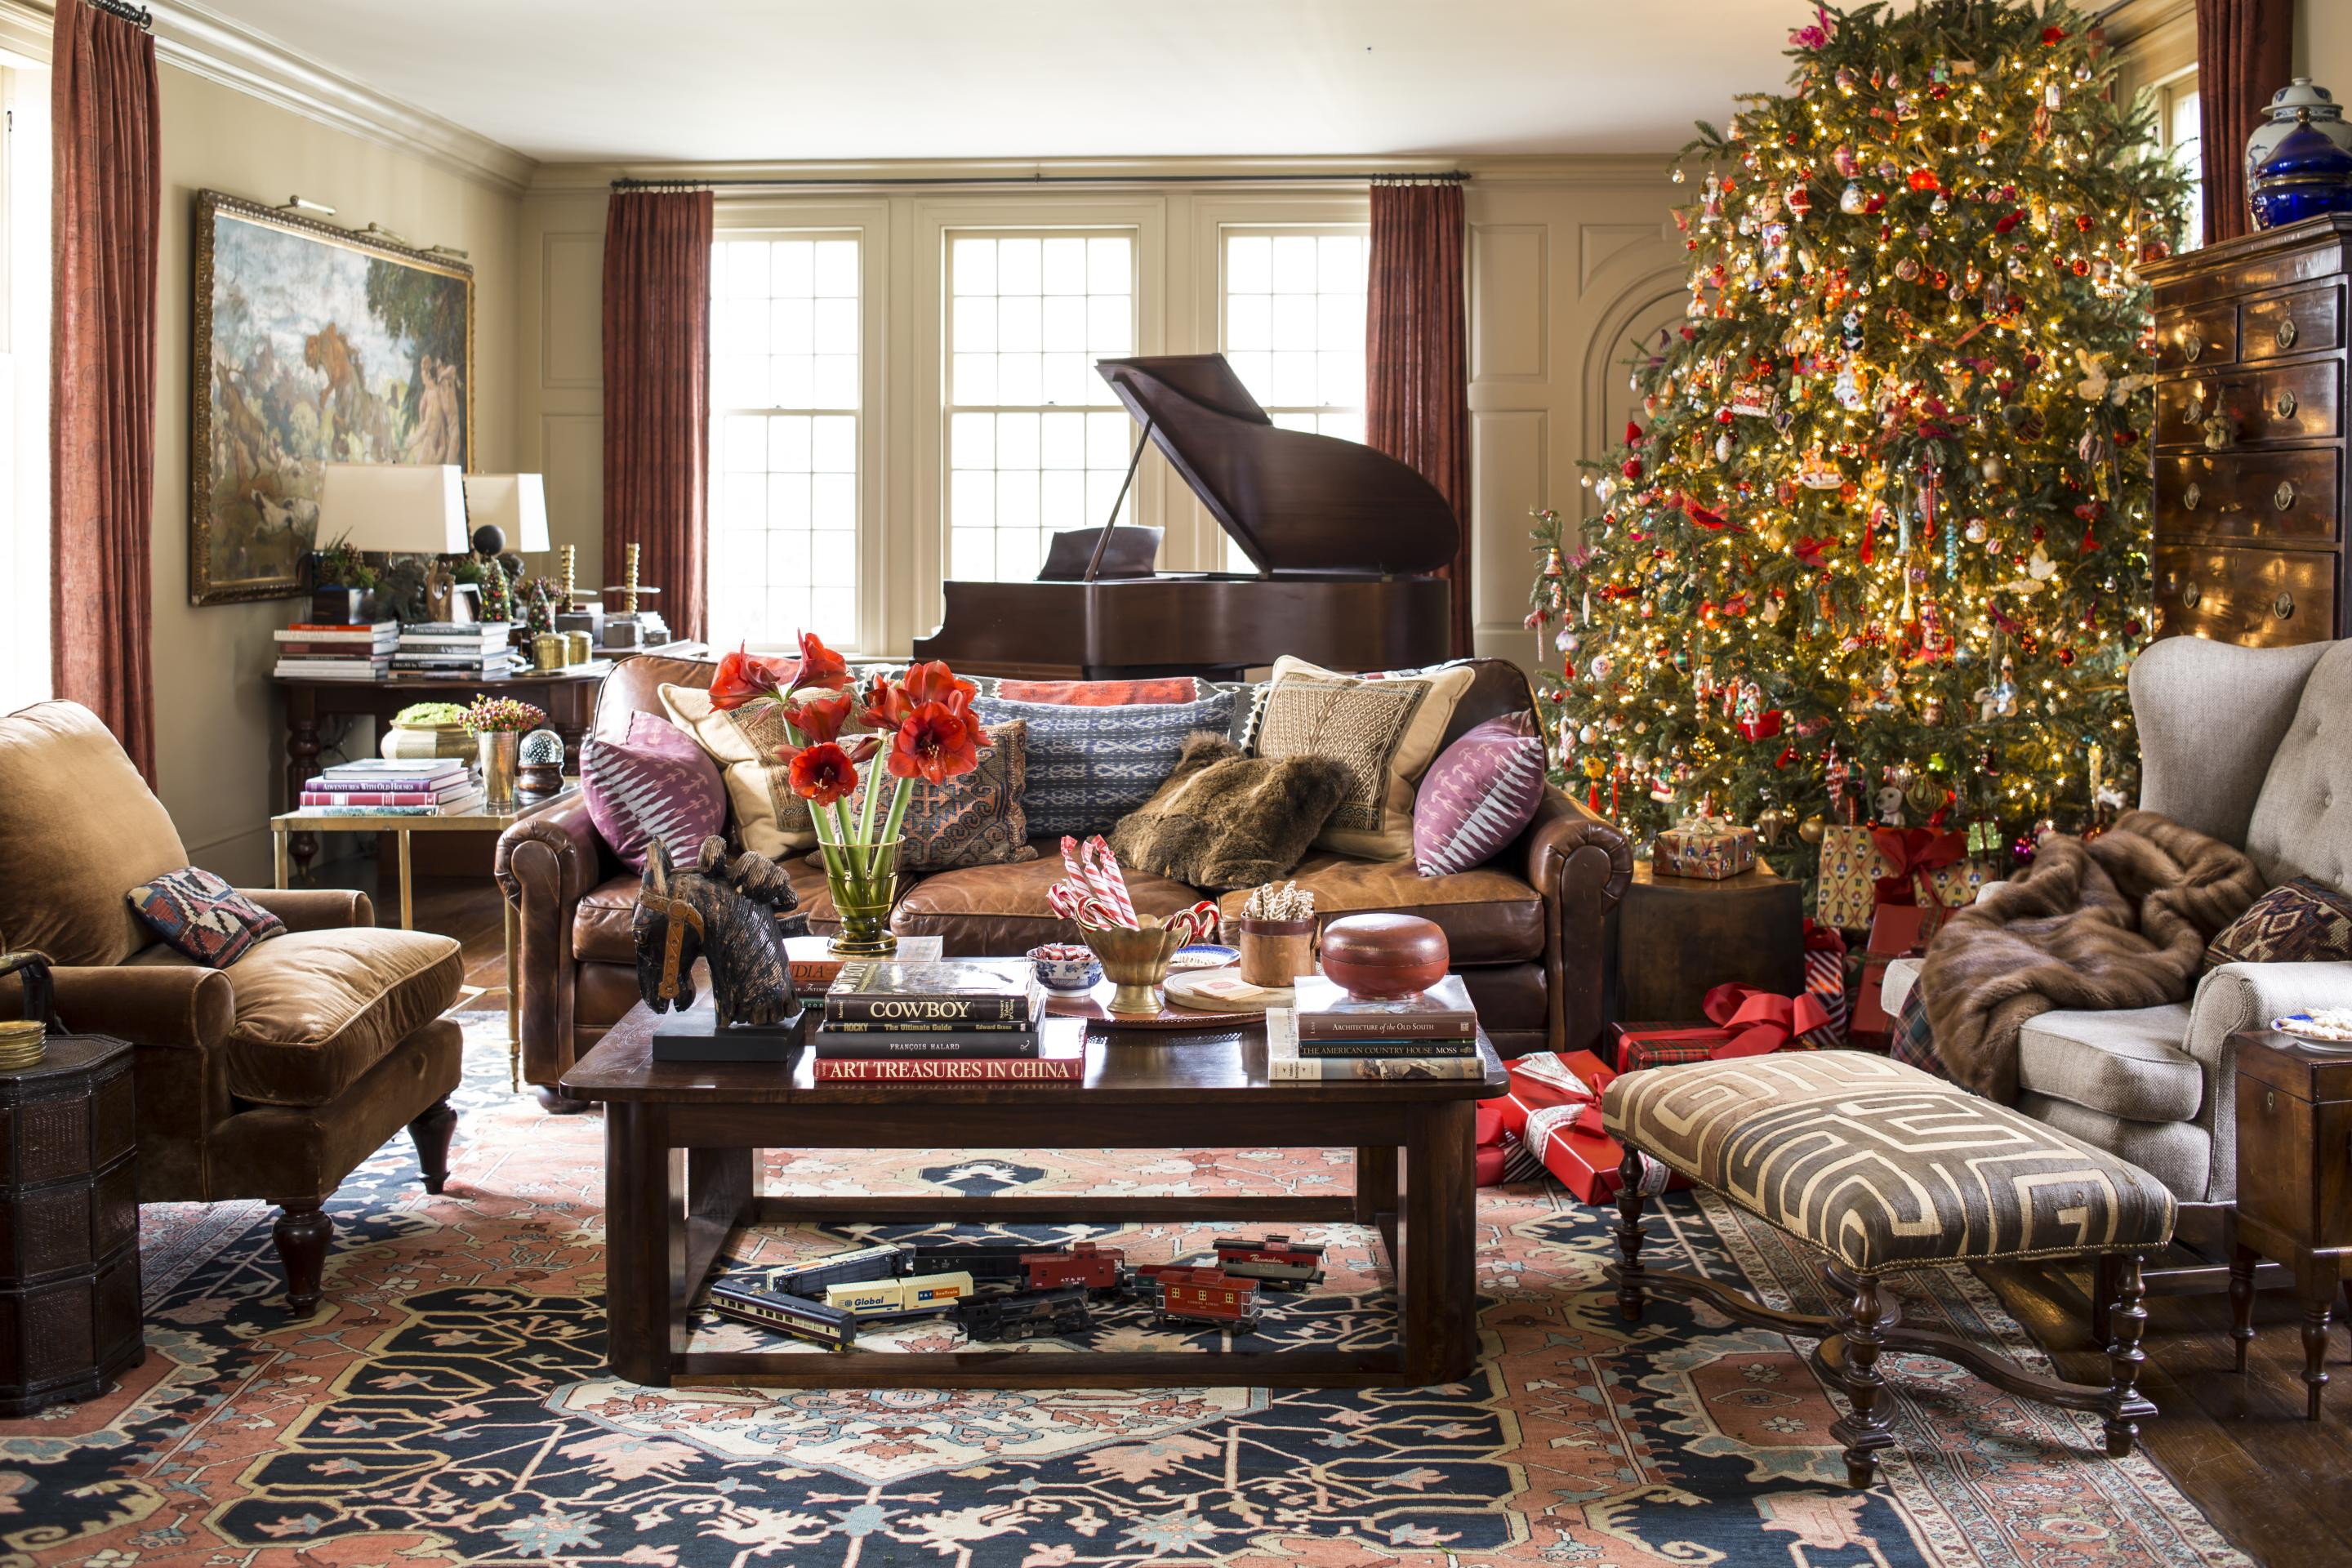 john bessler - How To Decorate A Ranch Style Home For Christmas